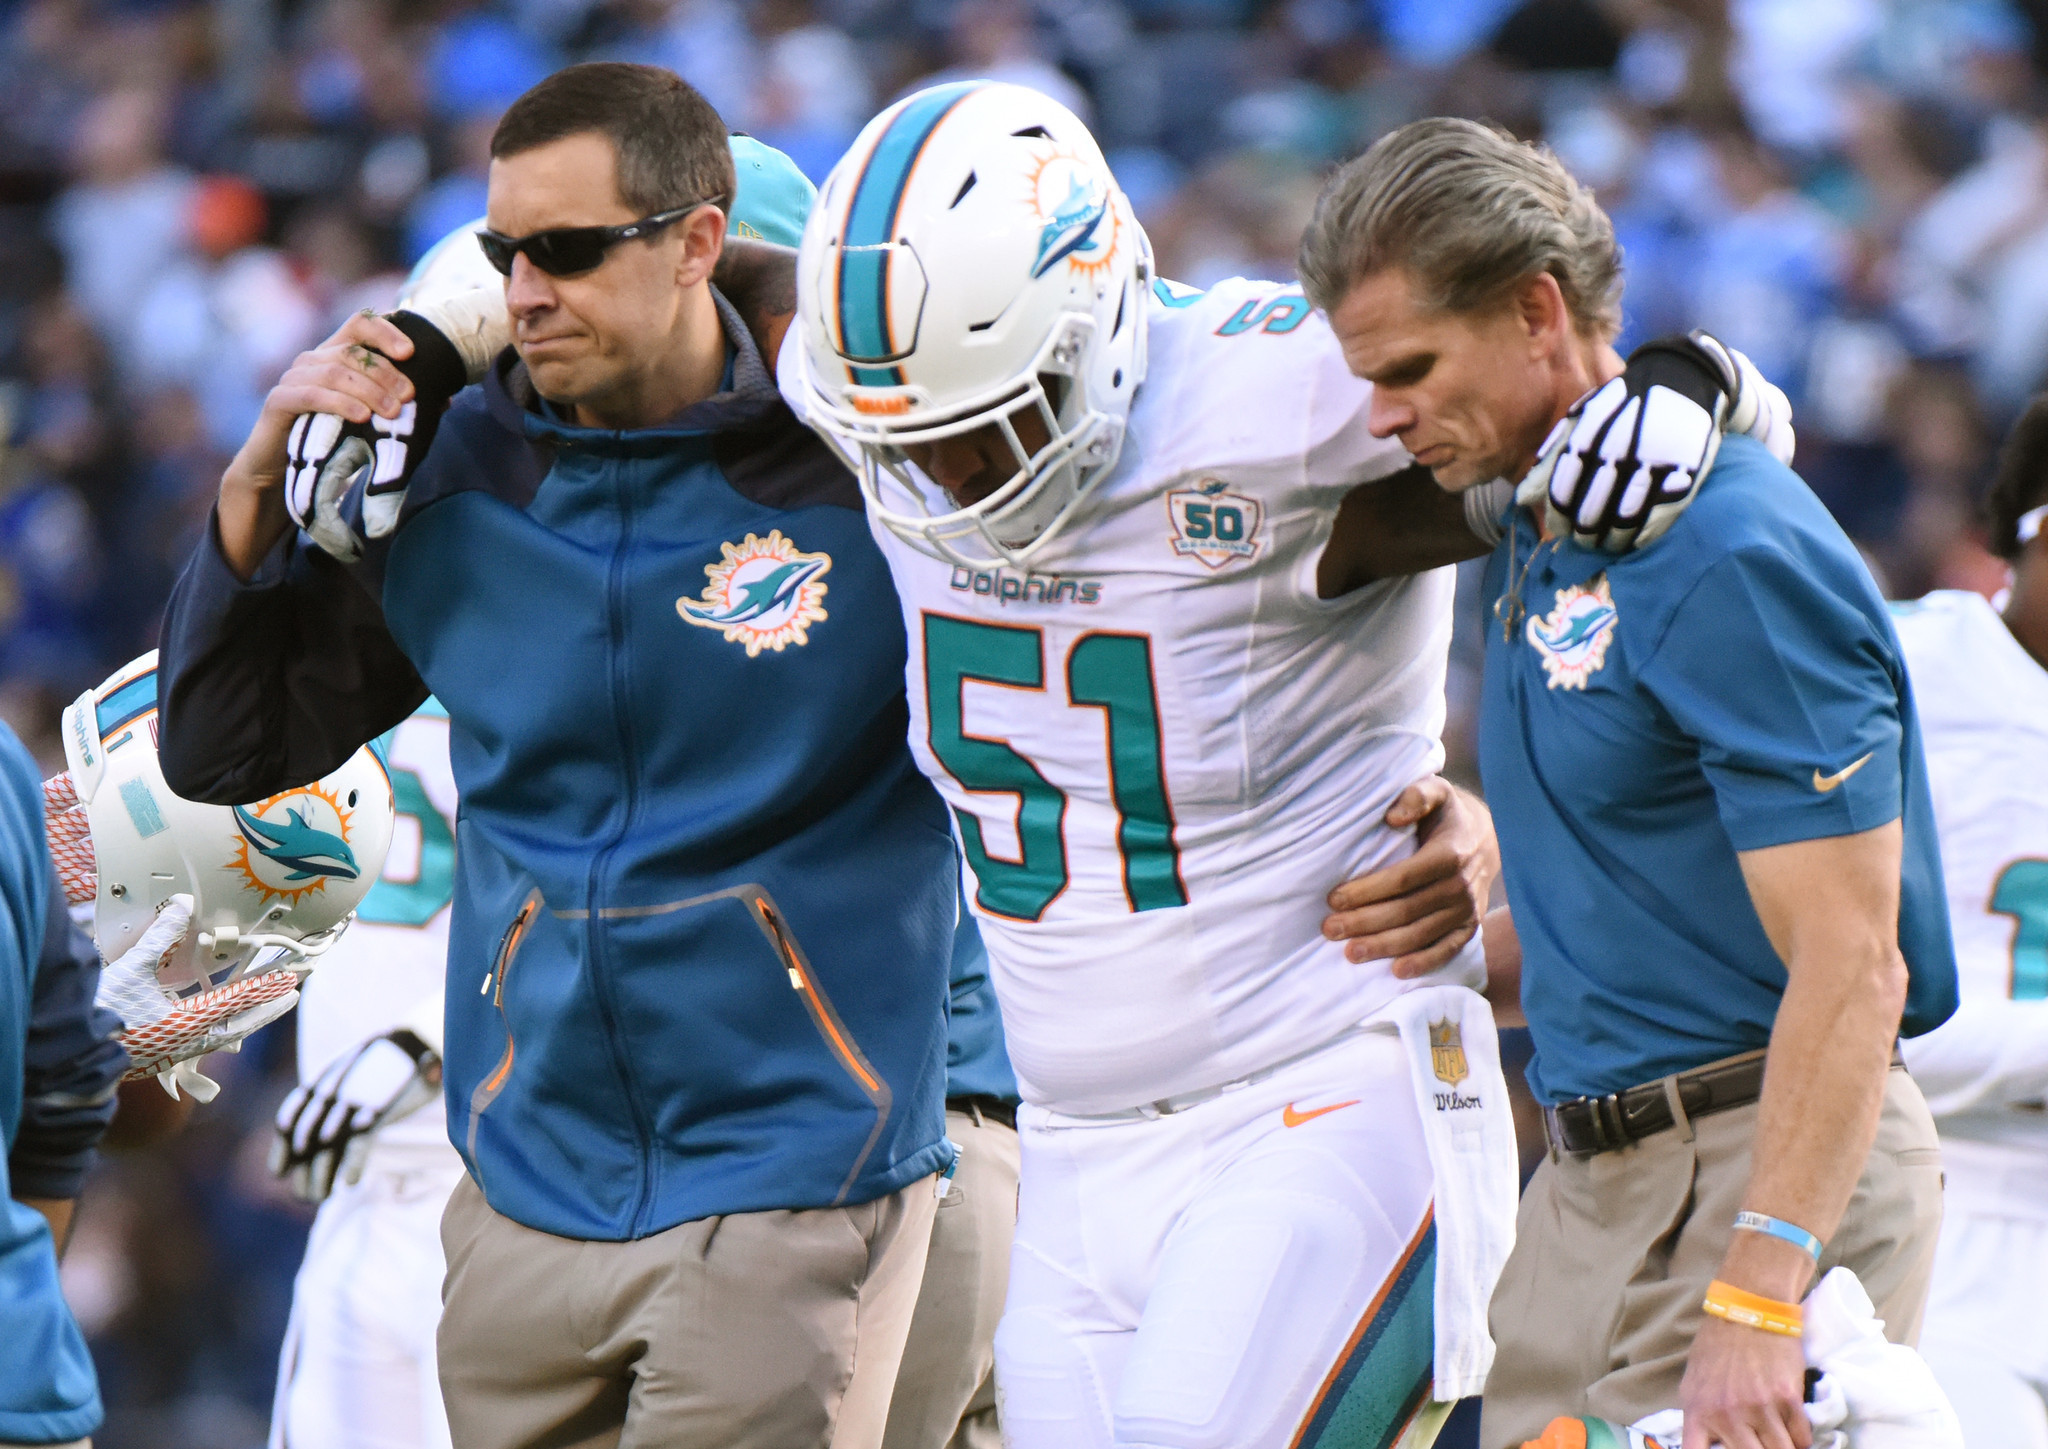 Injured Dolphins vets Mike Pouncey Reshad Jones and Koa Misi will